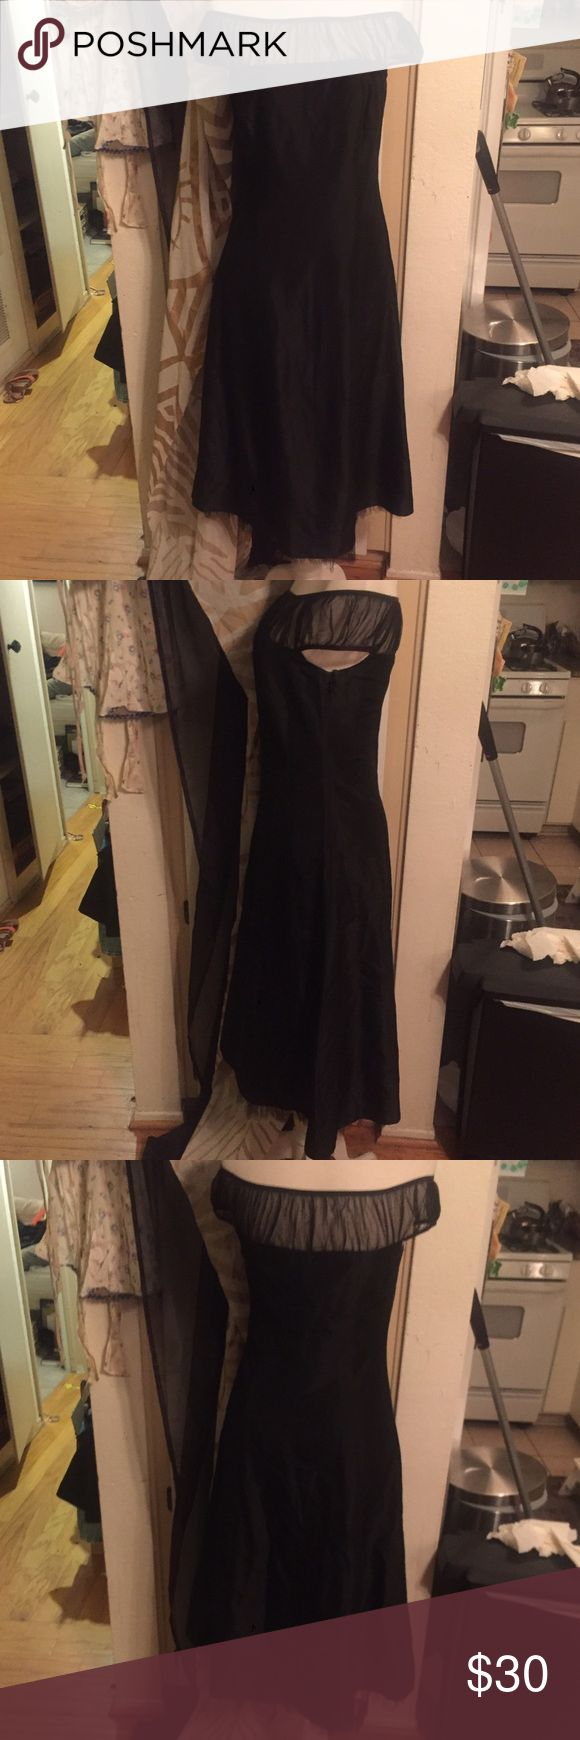 LAUNDRY by Shelli Segal off shoulder LBD size 6 LAUNDRY by Shelli Segal off shoulder LBD size 6 only worn once zips up the side has tulle underneath at bottom Laundry by Shelli Segal Dresses